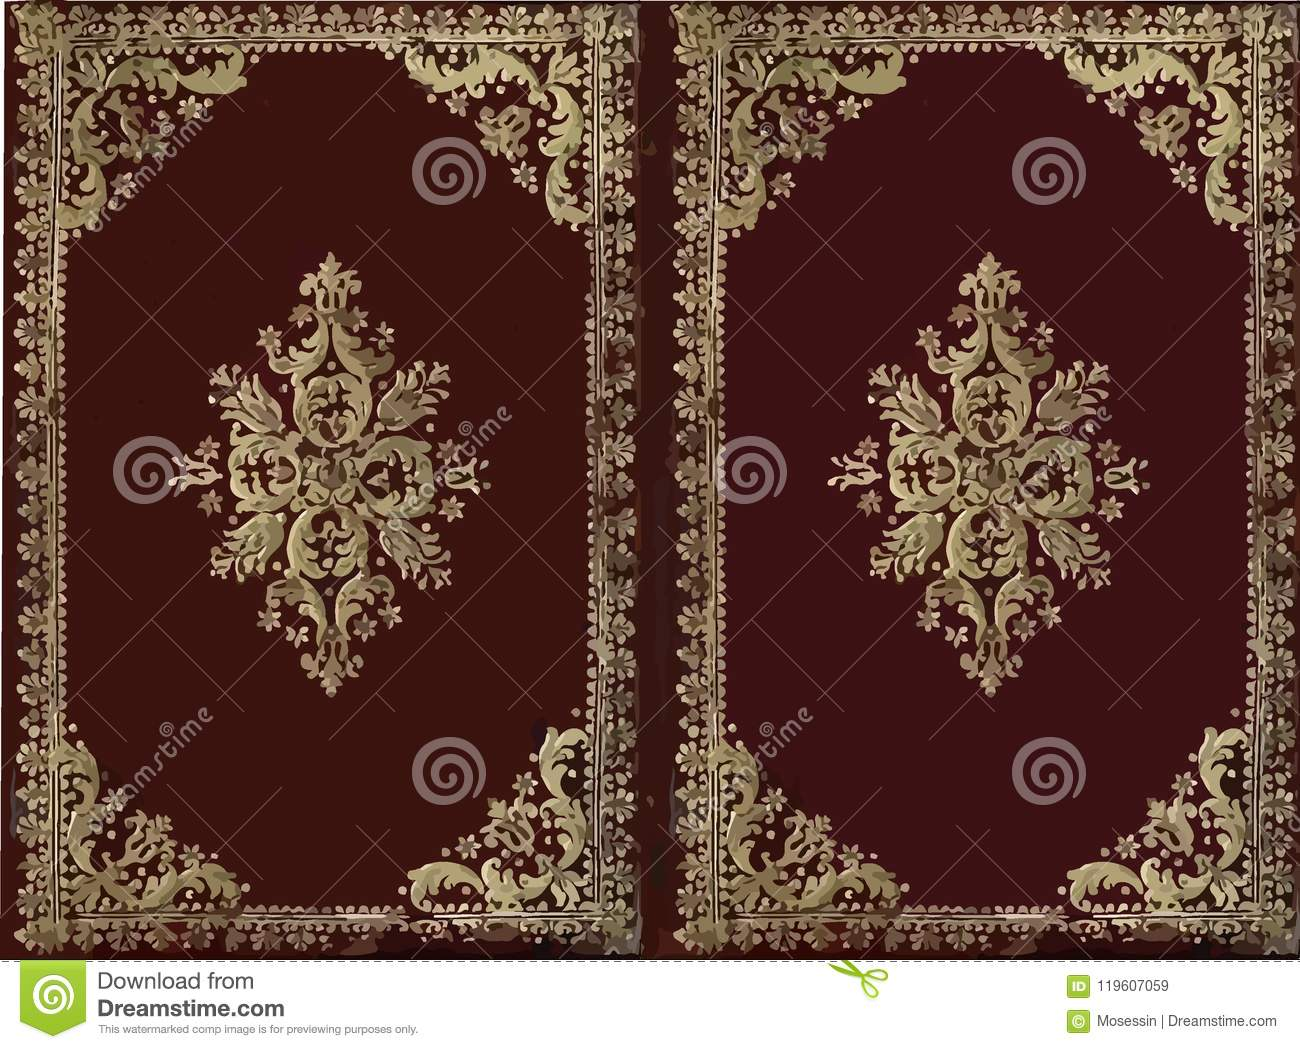 Old Book Cover Vector Free : Antique book cover stock vector illustration of